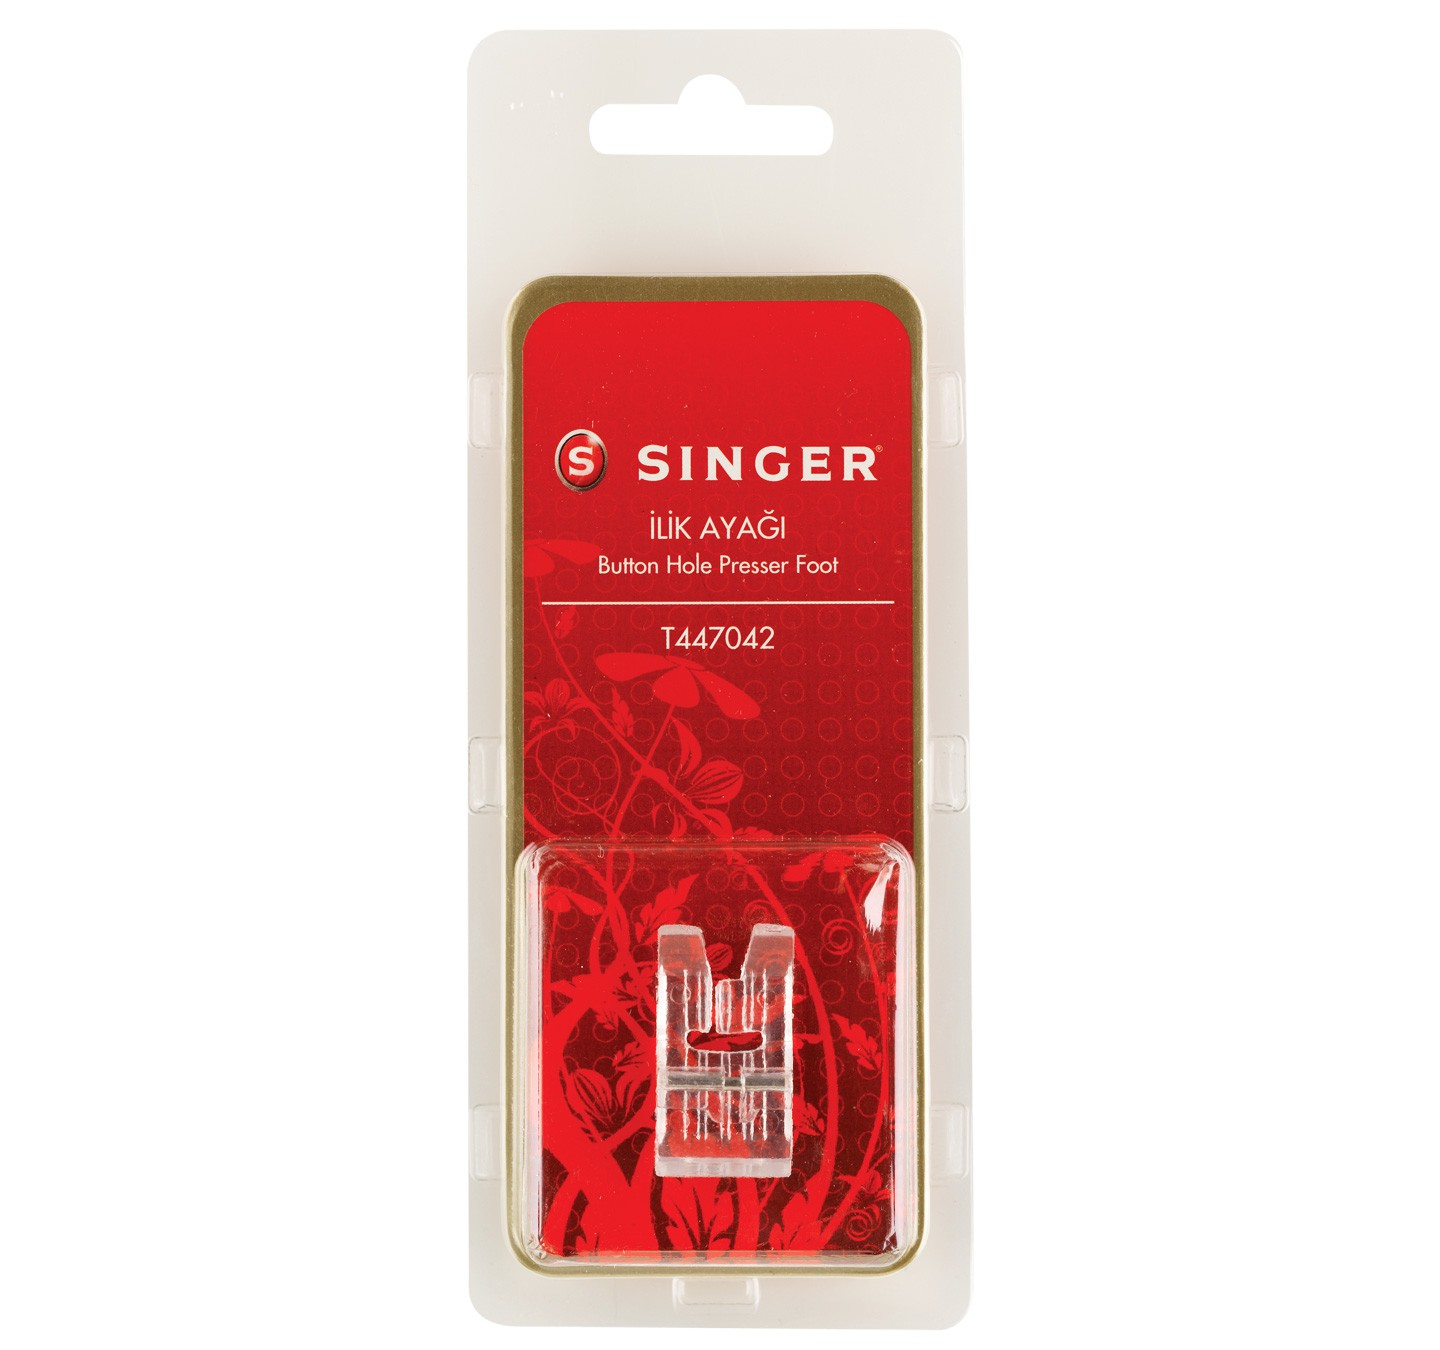 SINGER BUTTON HOLE PRESSER FOOT - 88100